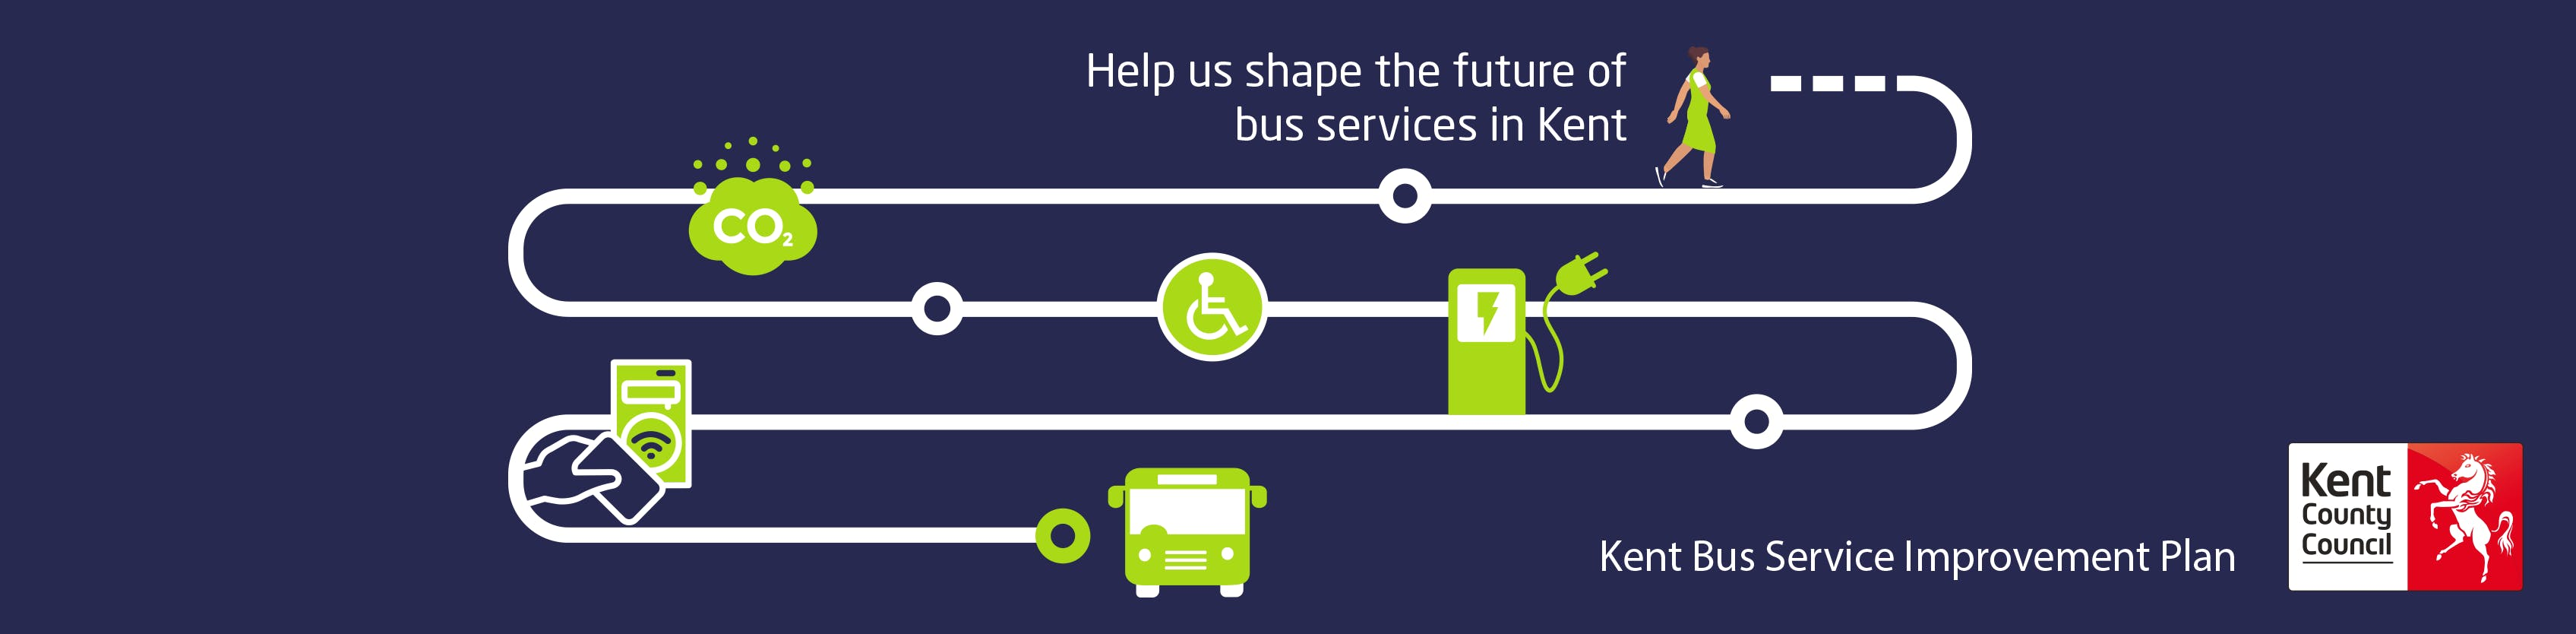 Help us shape the future of bus services in Kent